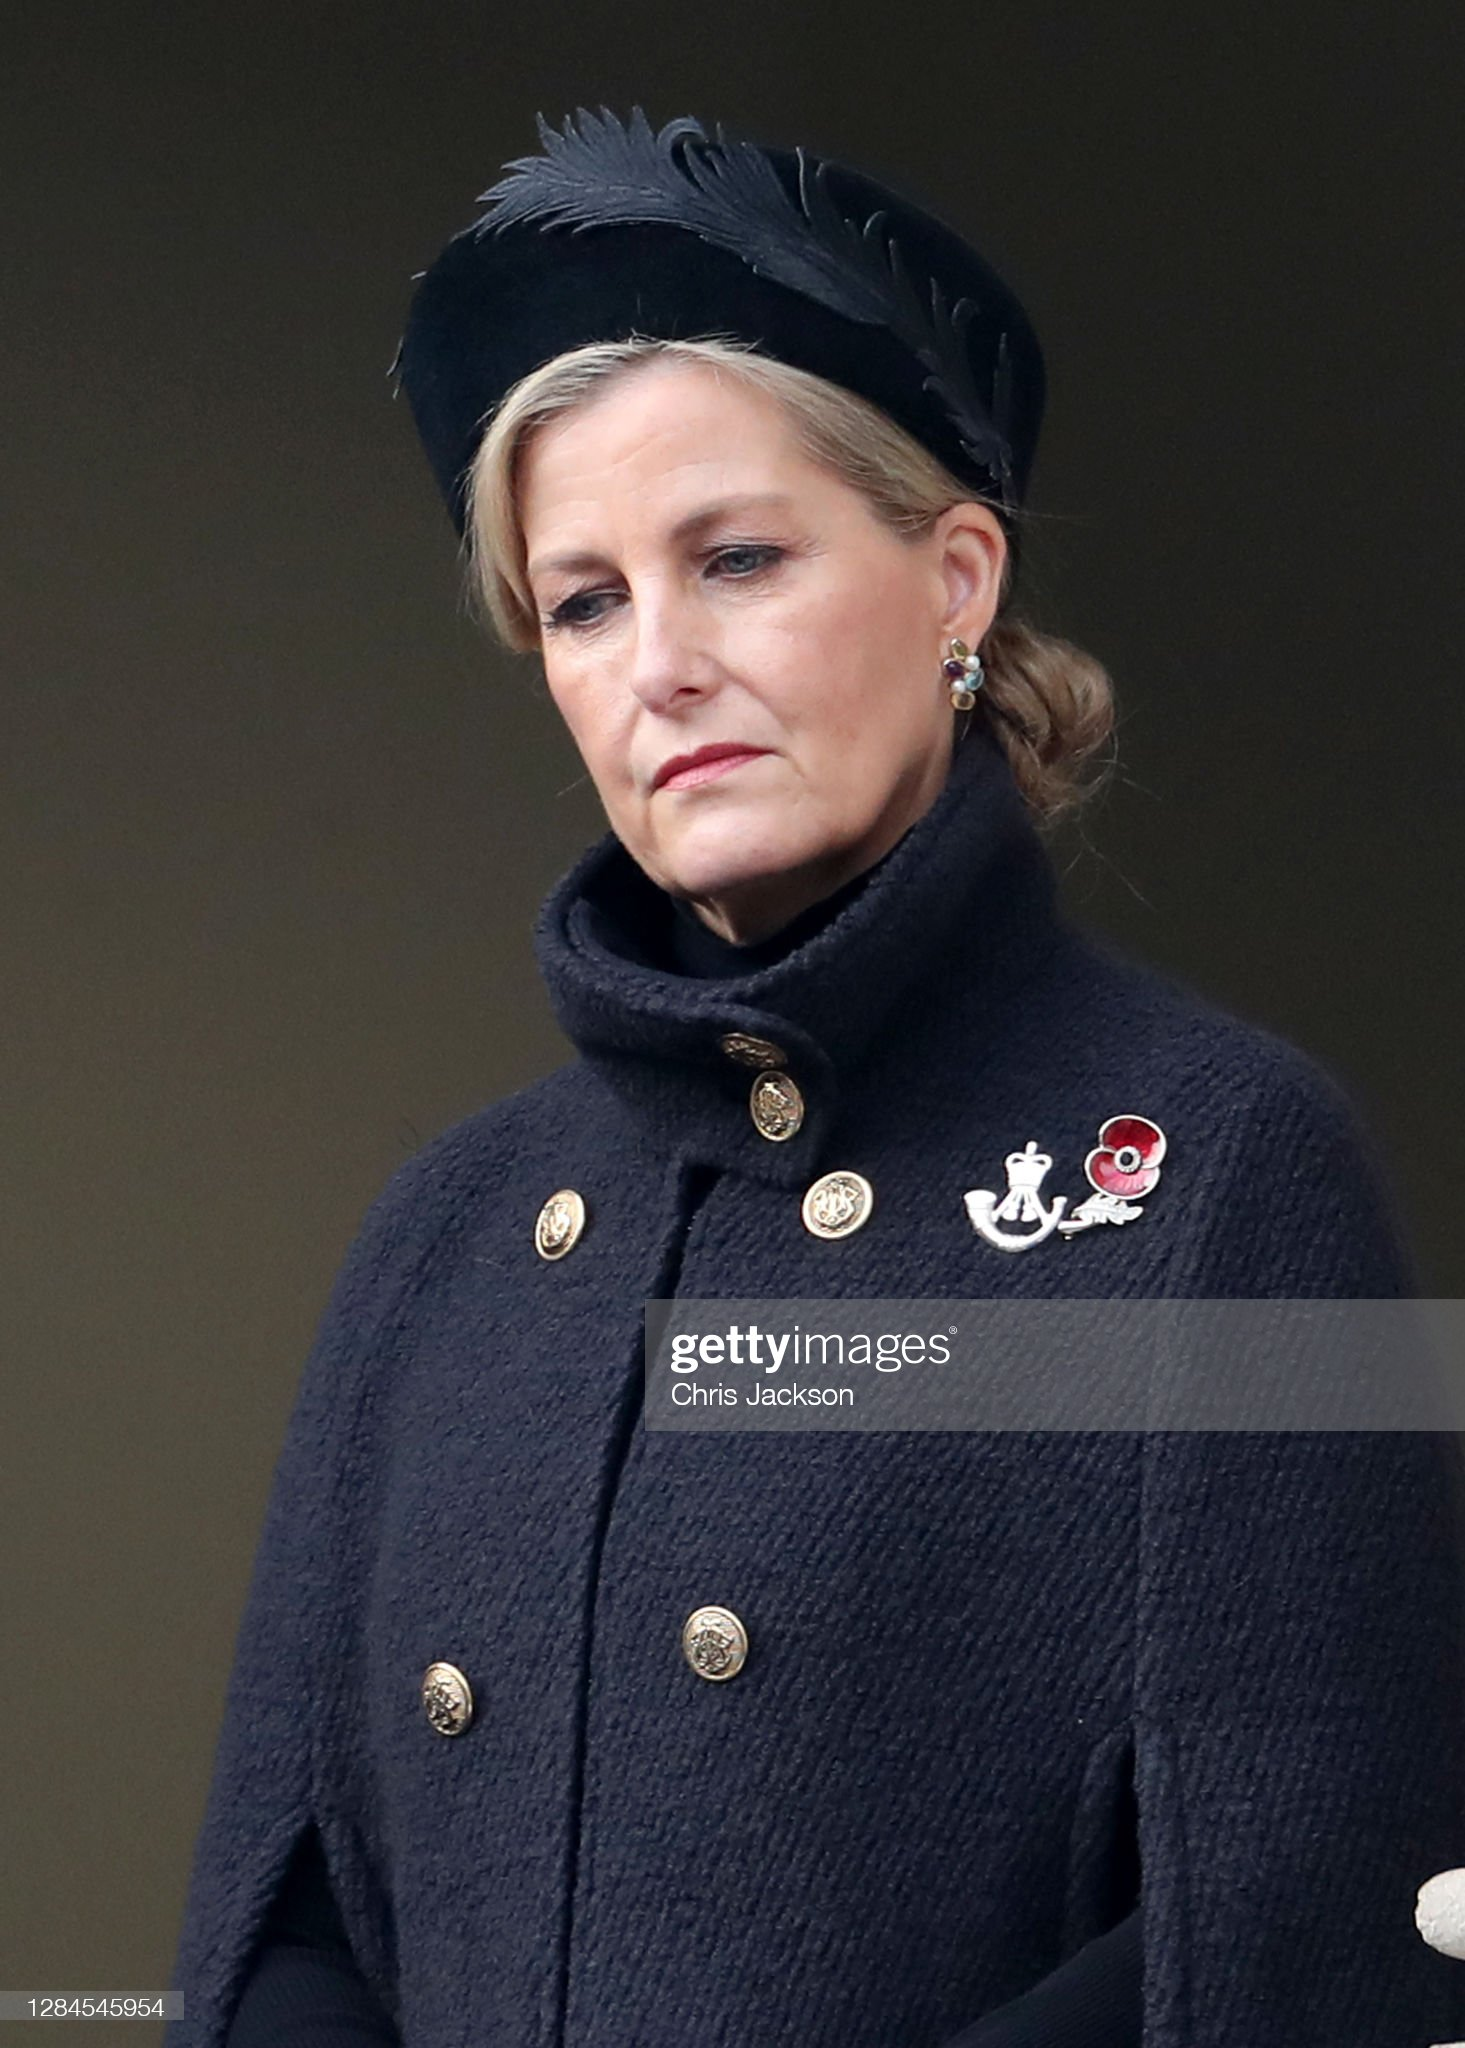 https://media.gettyimages.com/photos/sophie-countess-of-wessex-during-the-national-service-of-remembrance-picture-id1284545954?s=2048x2048